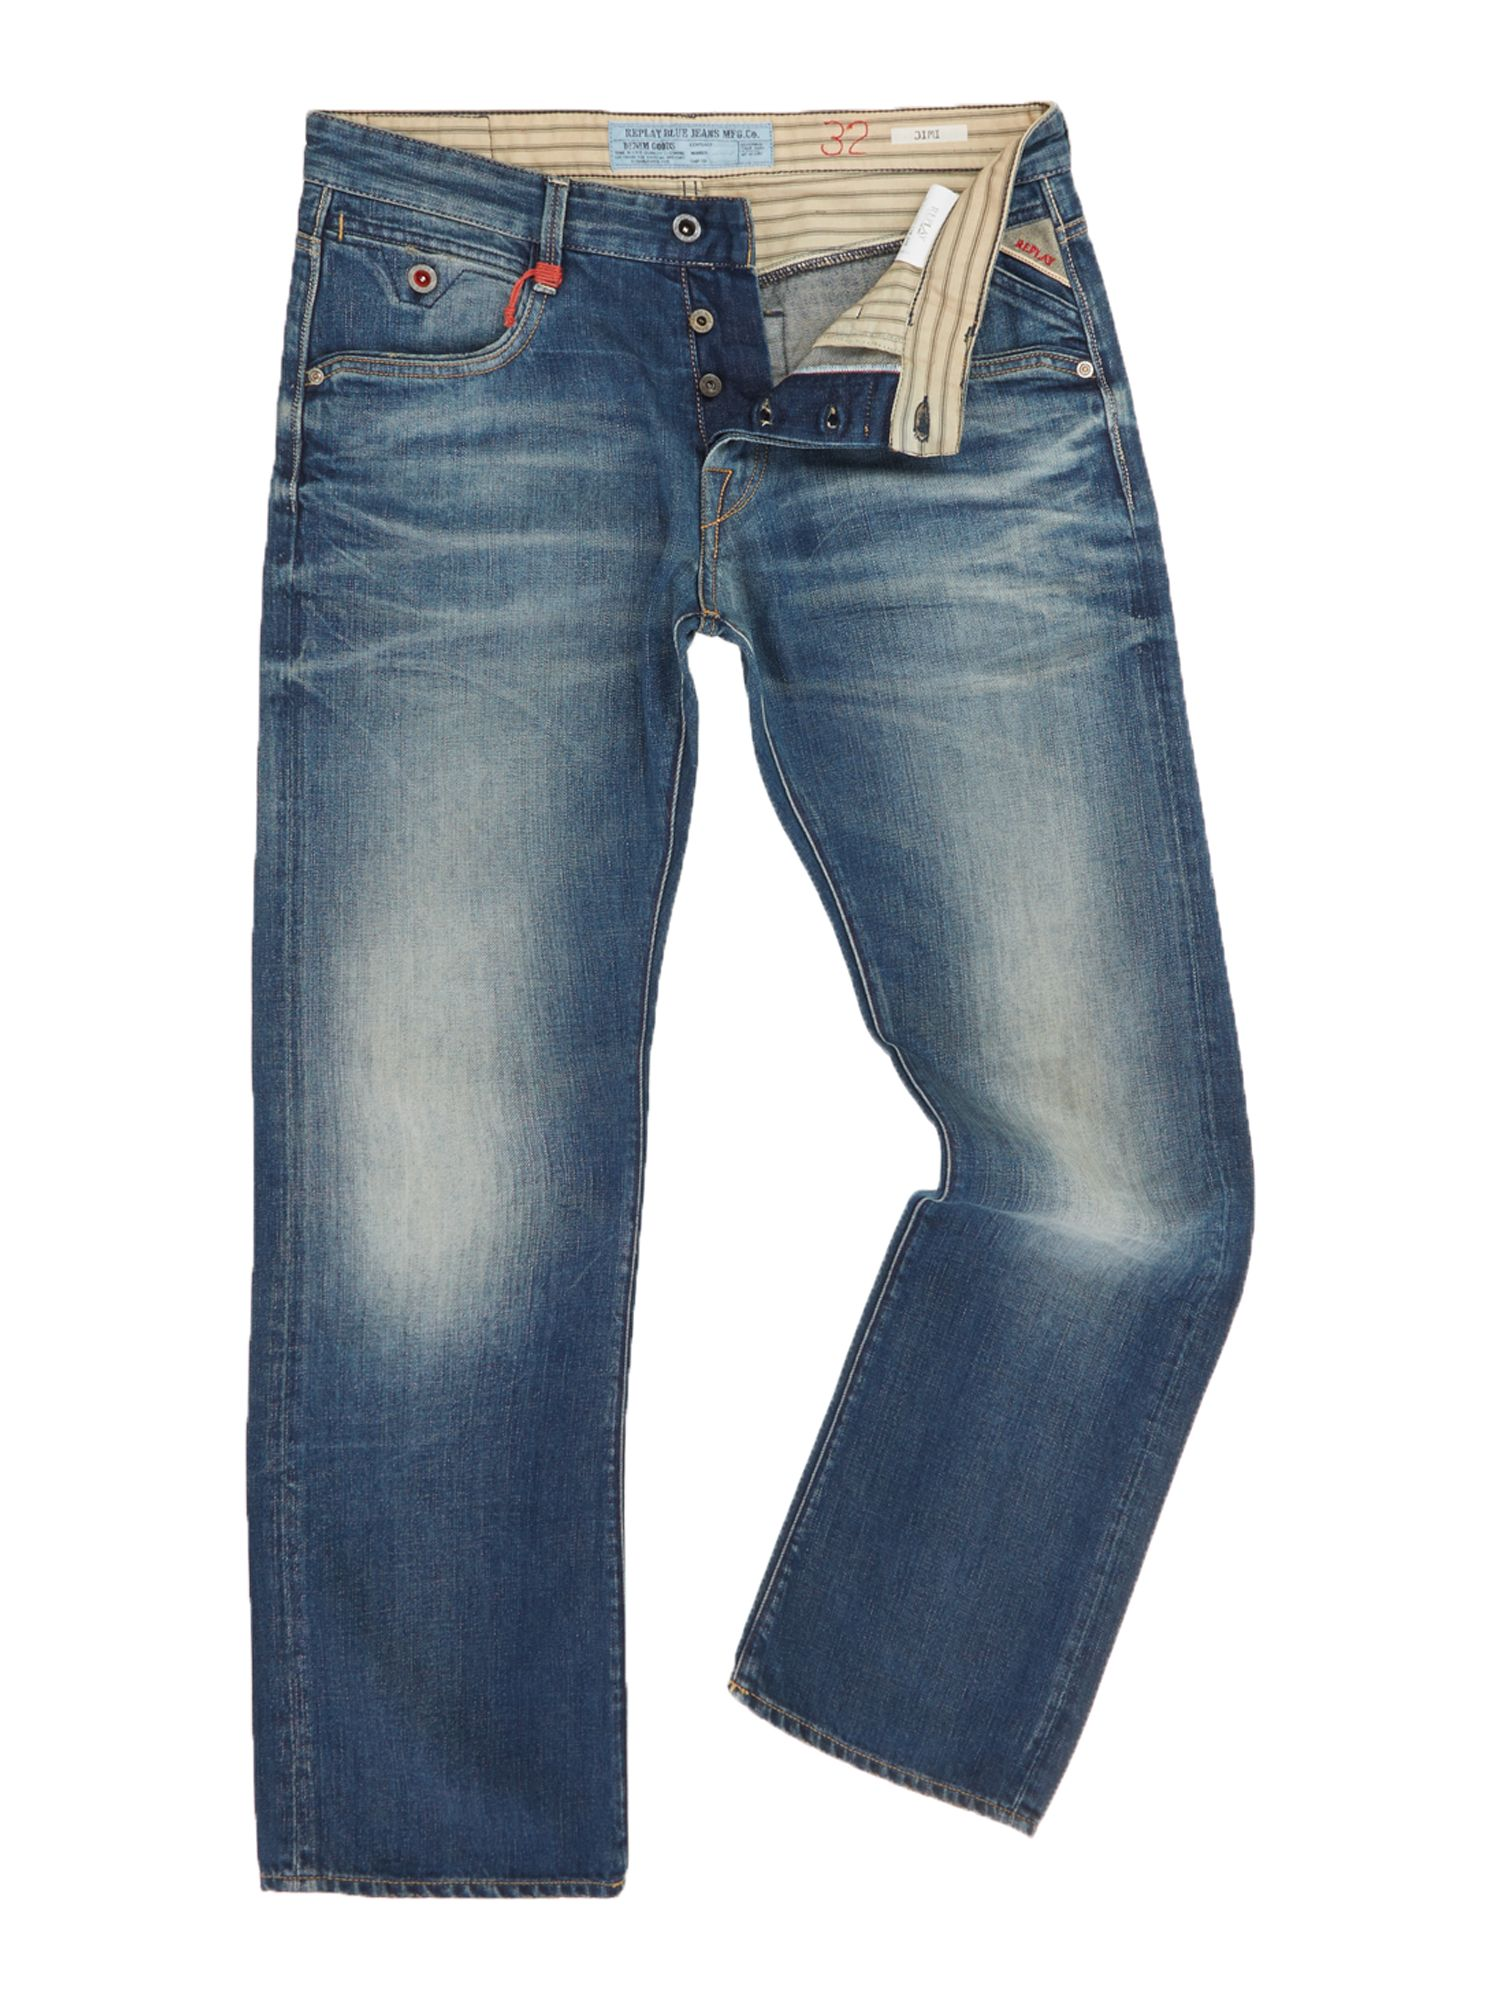 Jimi regular bootcut fit denim jeans